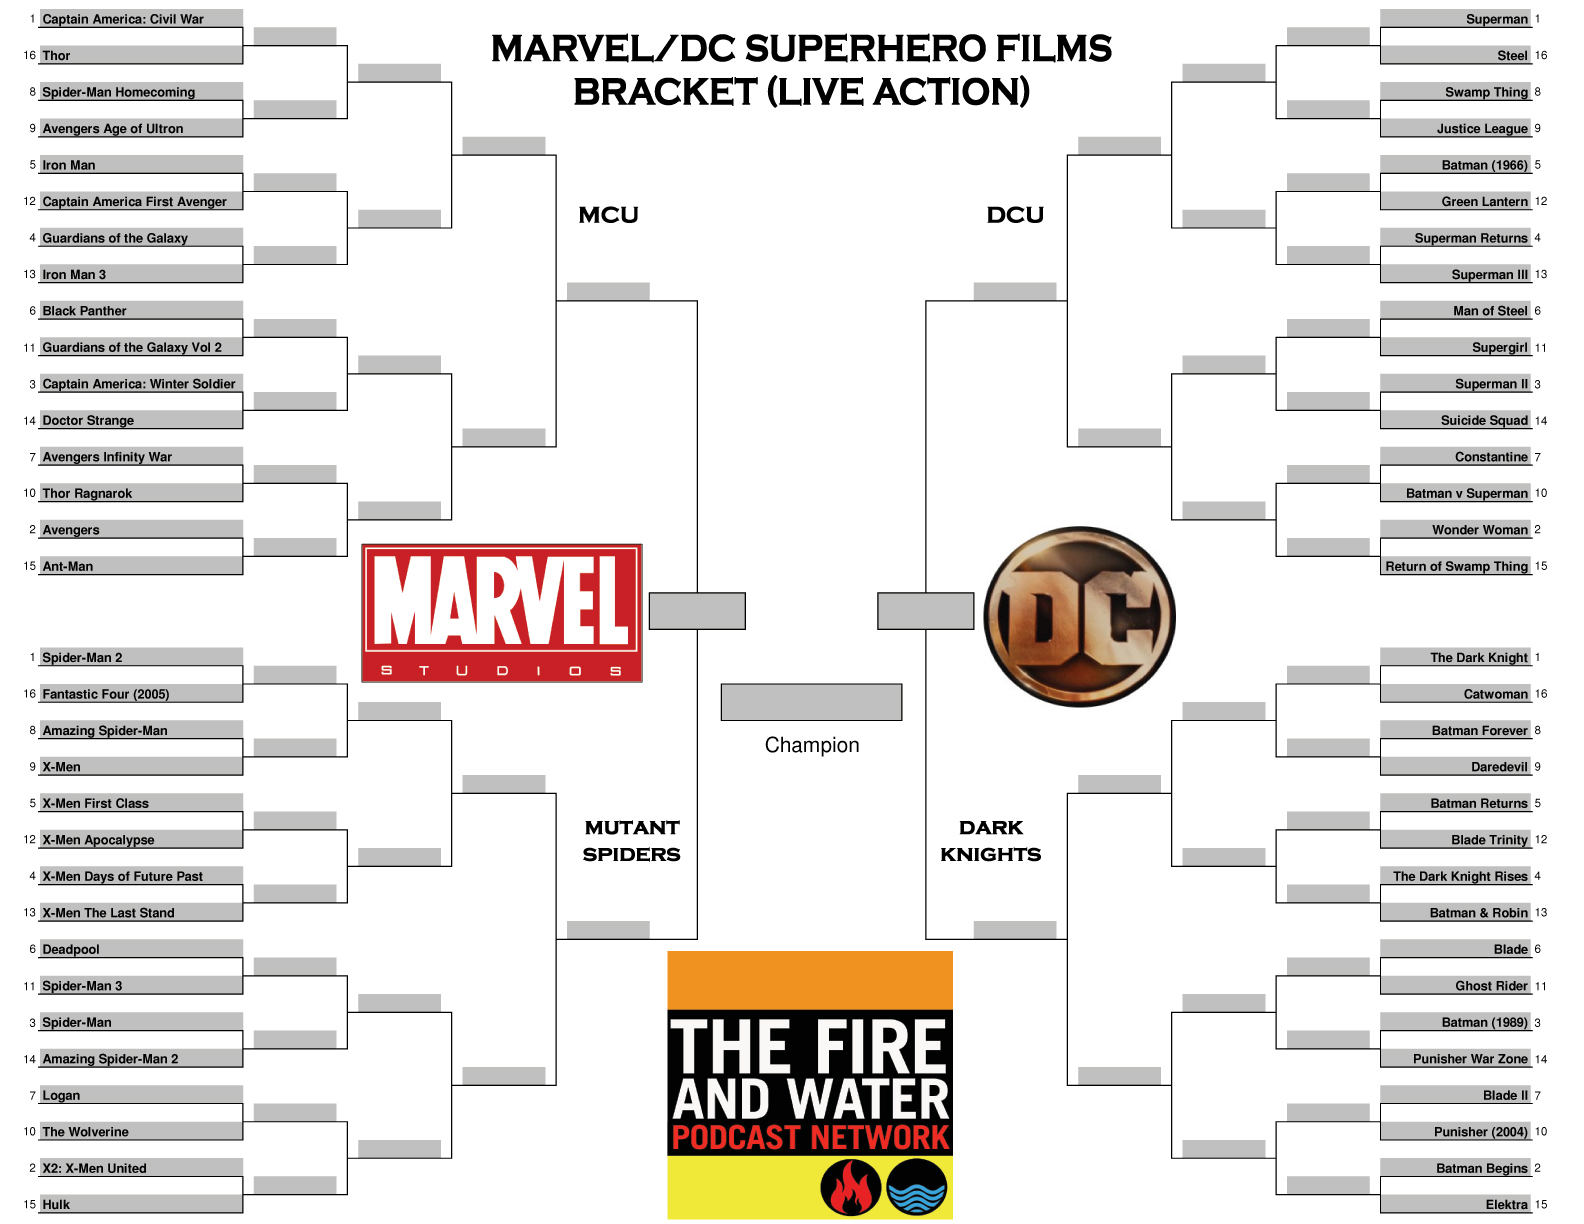 Marvel/DC Superhero Films Bracket